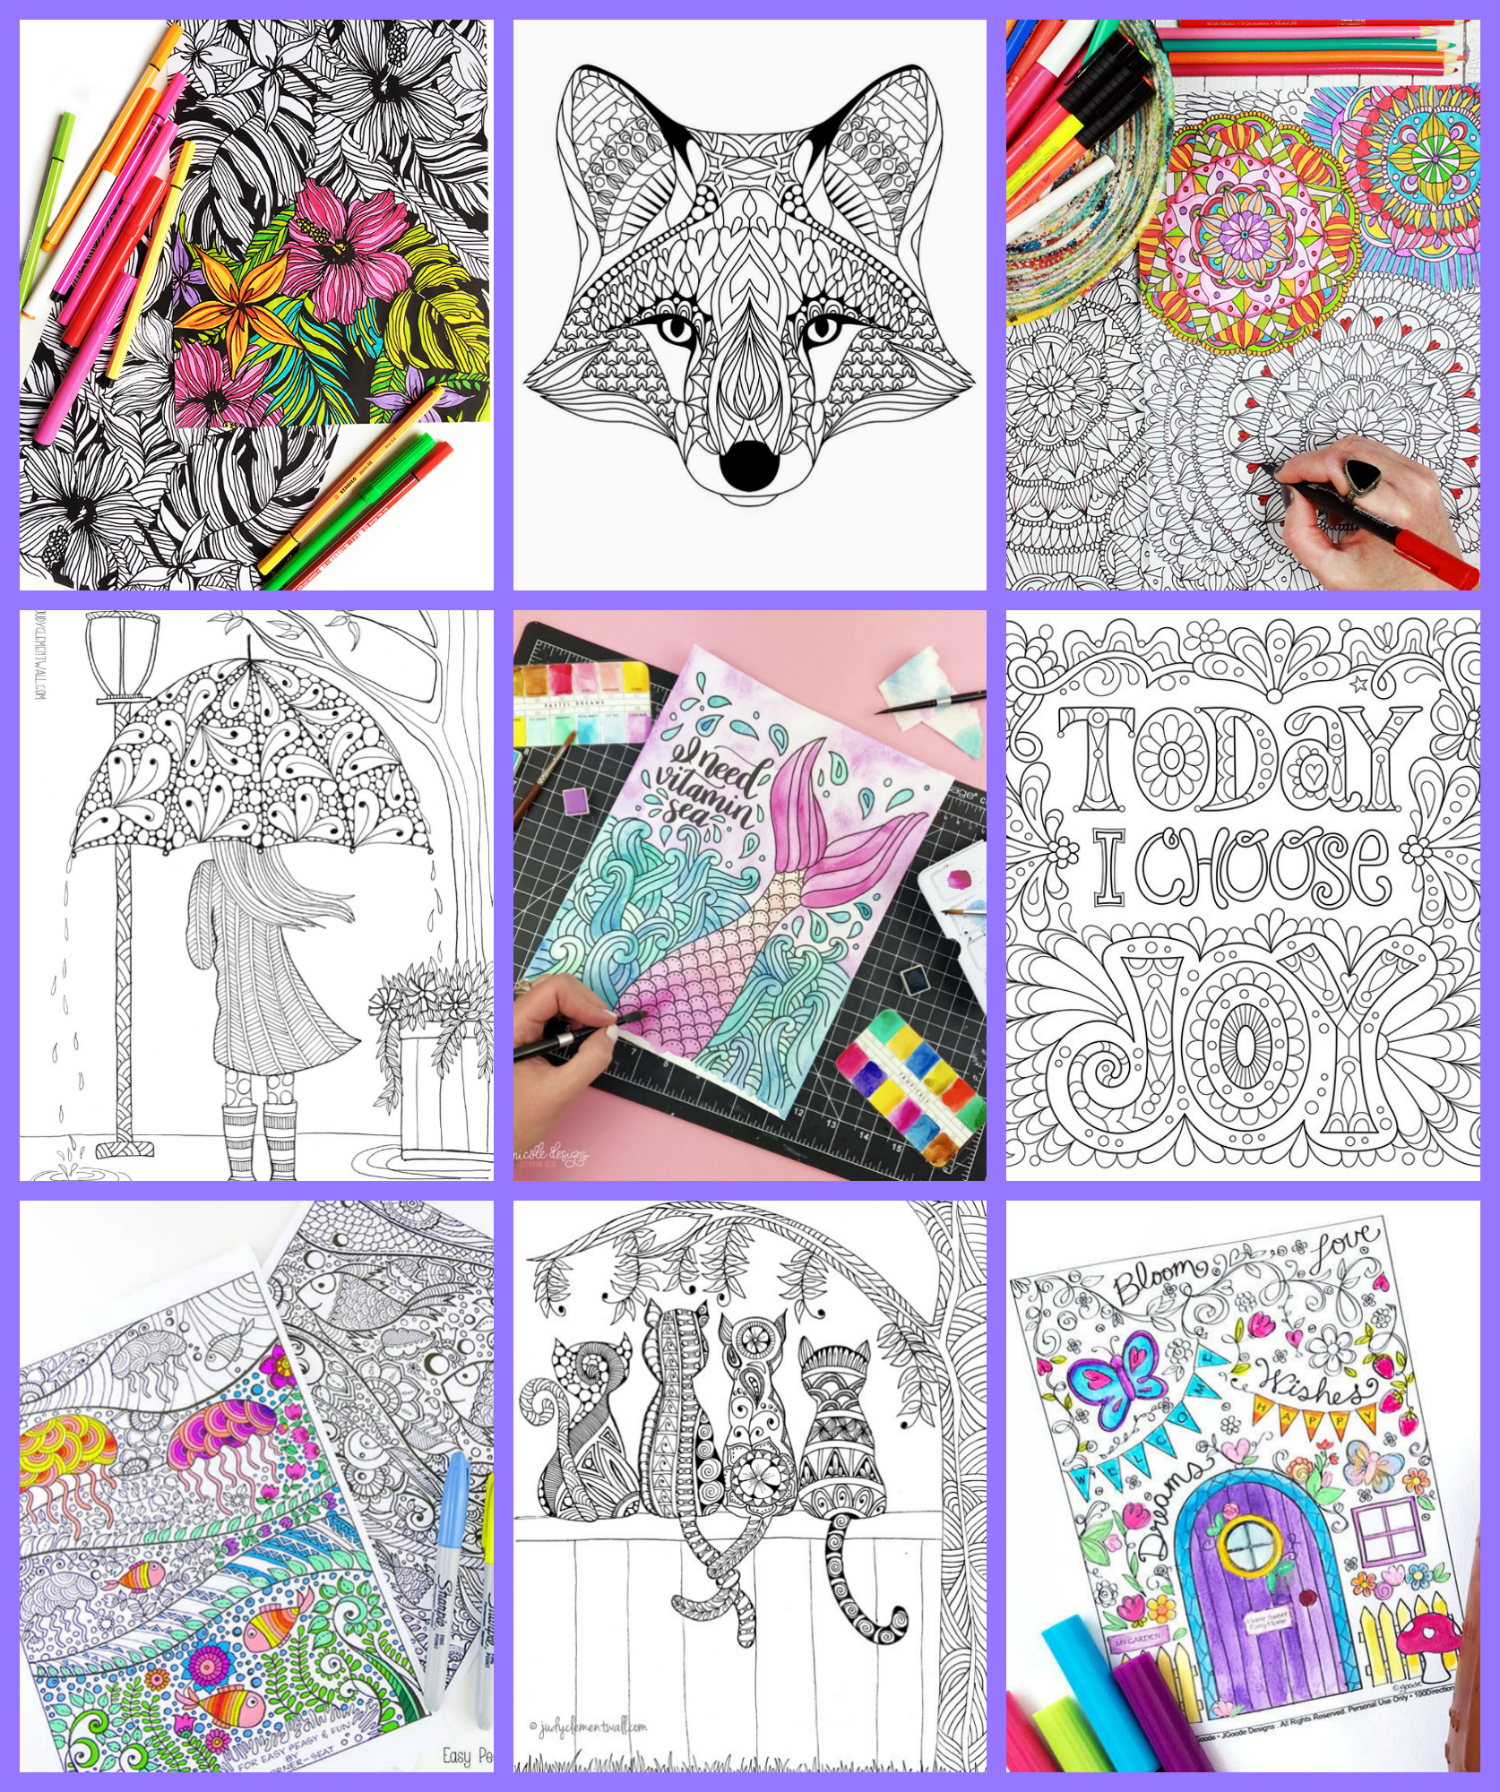 FREE Adult Coloring Pages that are perfect for grown-ups or older children who are looking for a challenge! A great way to relax, unwind, and de-stress!